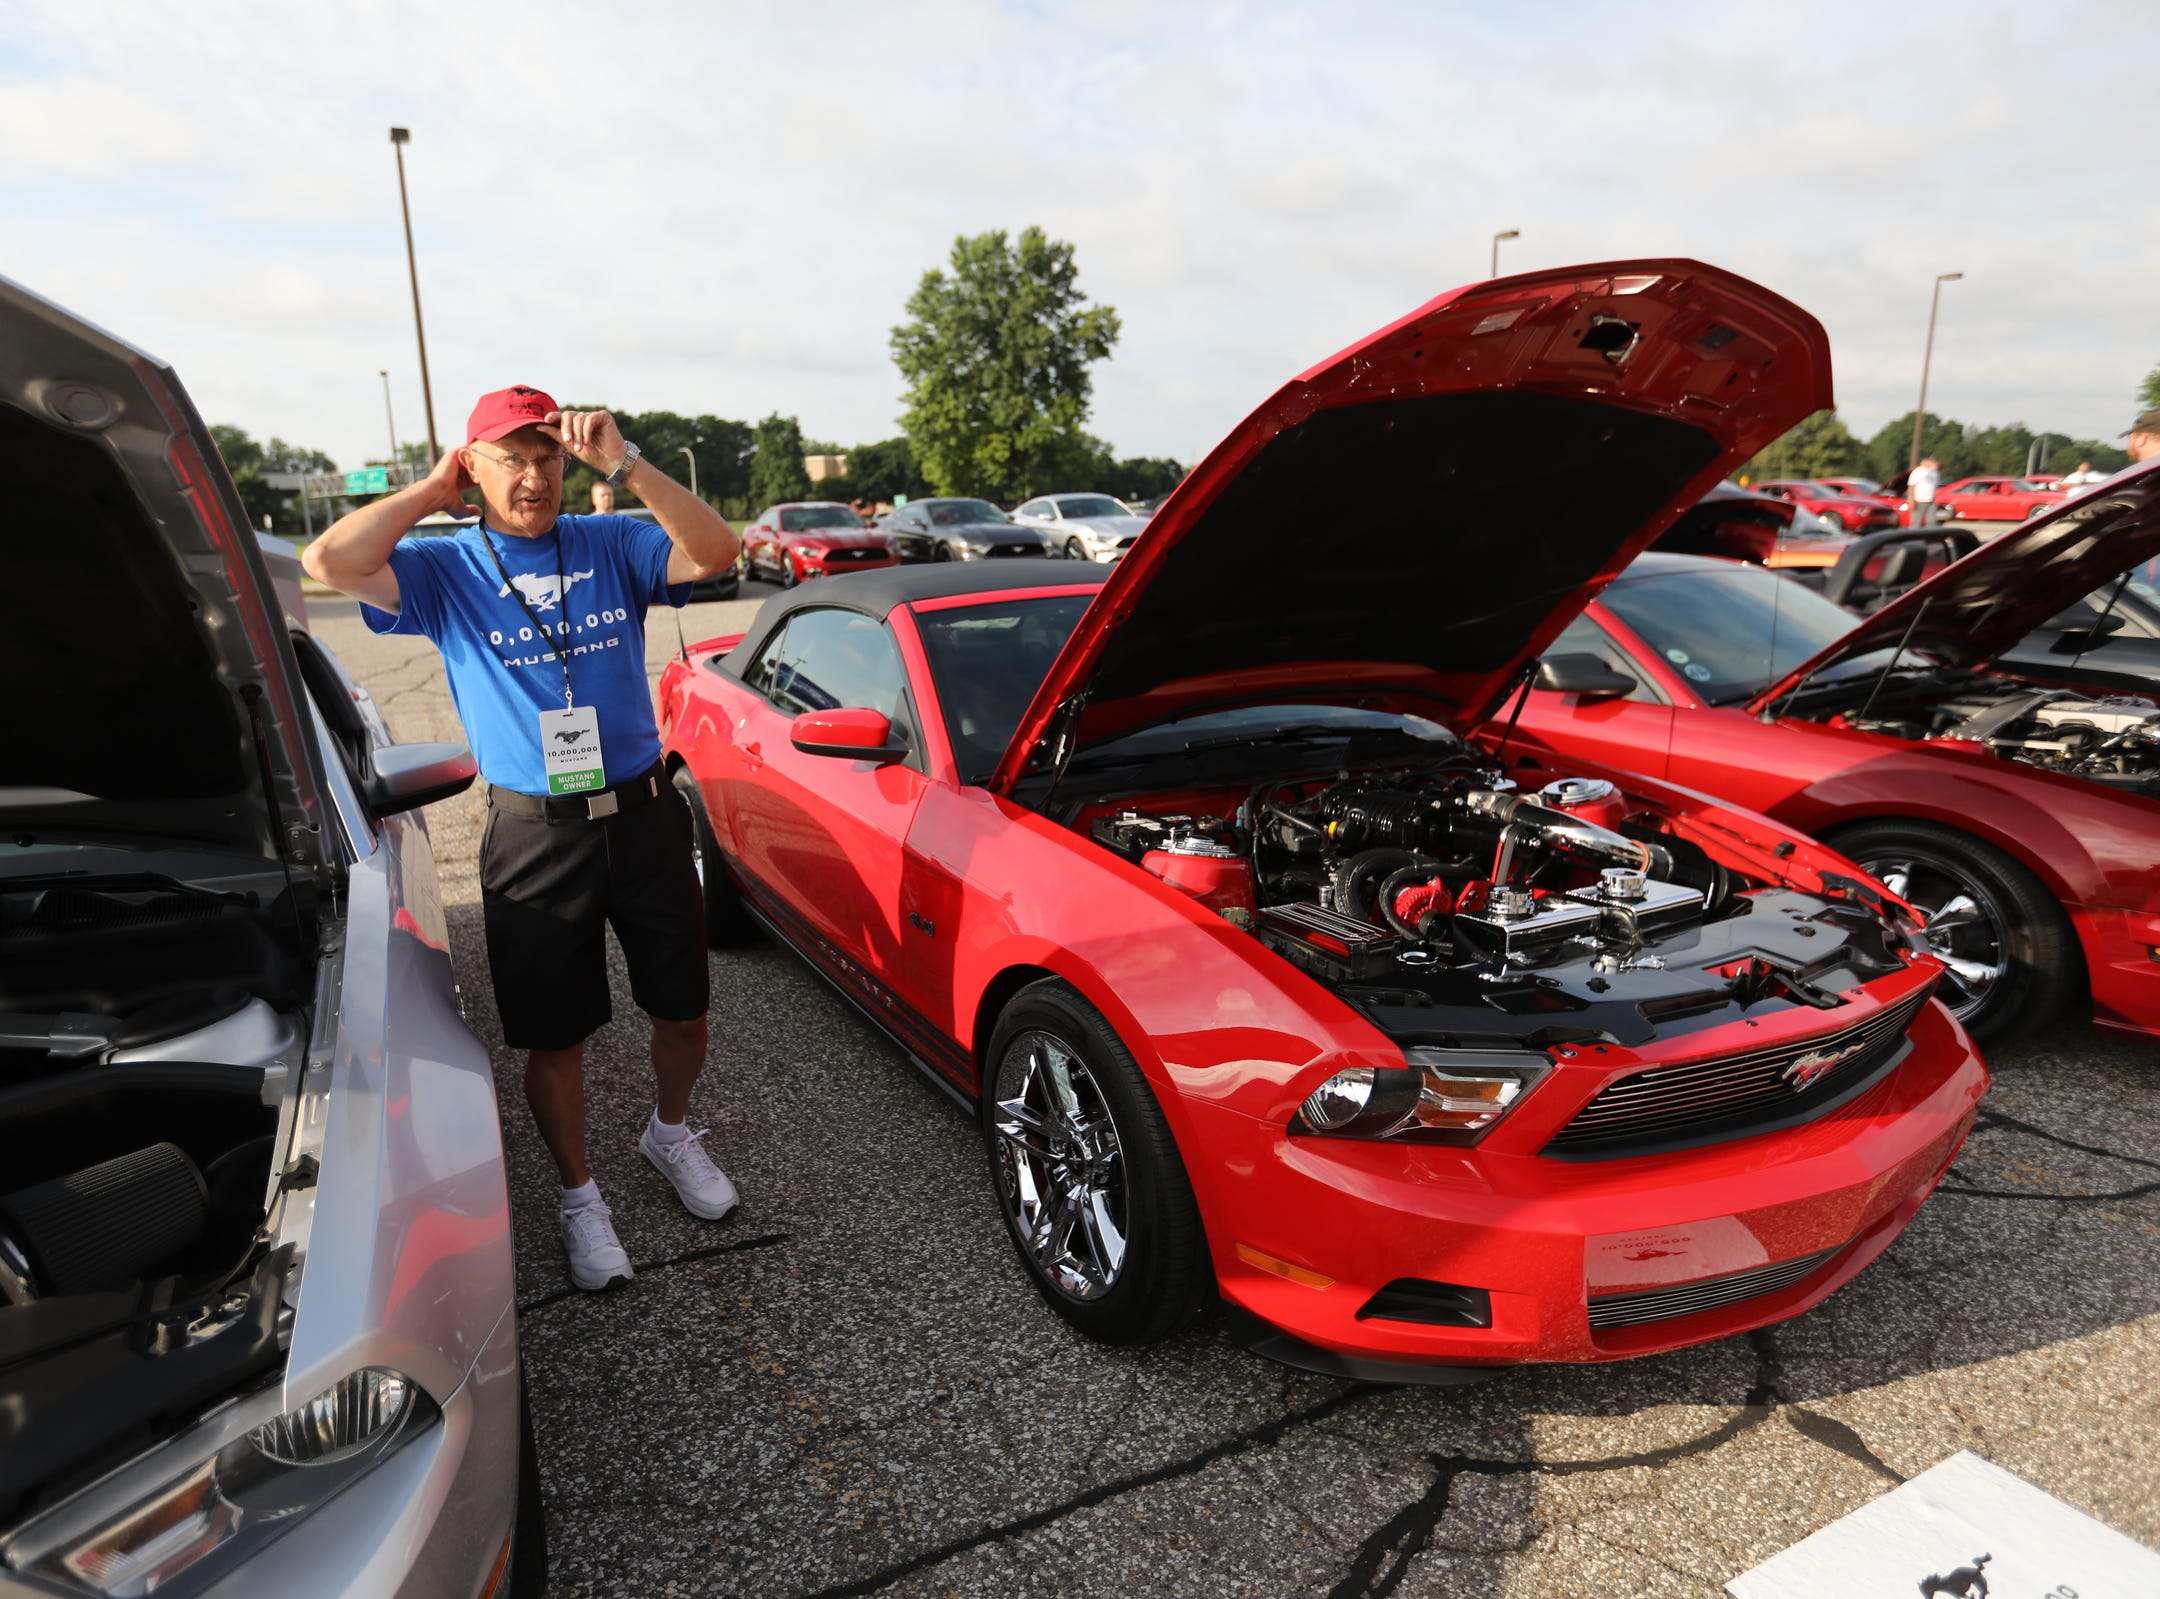 Rick Pidsosny, 69, of Canton says he has spent more money on restoring his 2010 Ford Mustang convertible than it cost to buy the previous rental car, during a Ford event celebrating the 10,000,000 Mustang built at the Ford Motor Company World Headquarters in Dearborn on Wed., Aug 8, 2018.